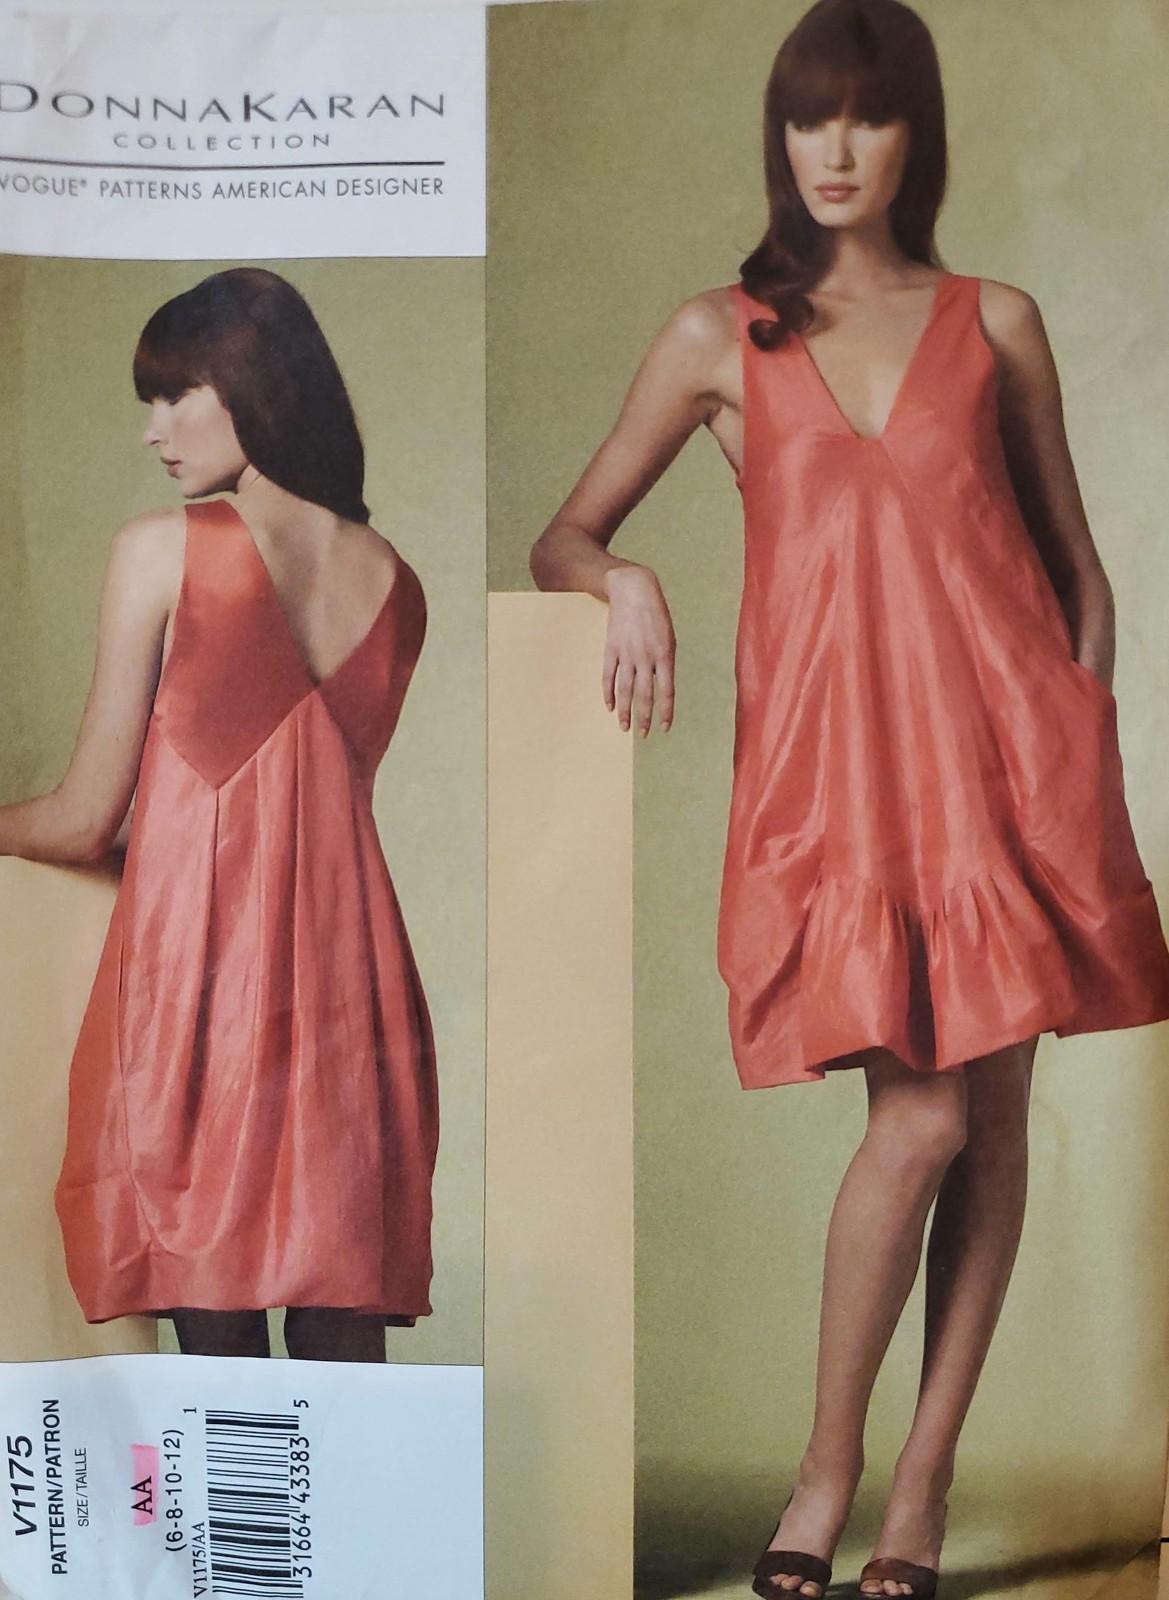 Primary image for Vogue Pattern 1175 Donna Karan Collection